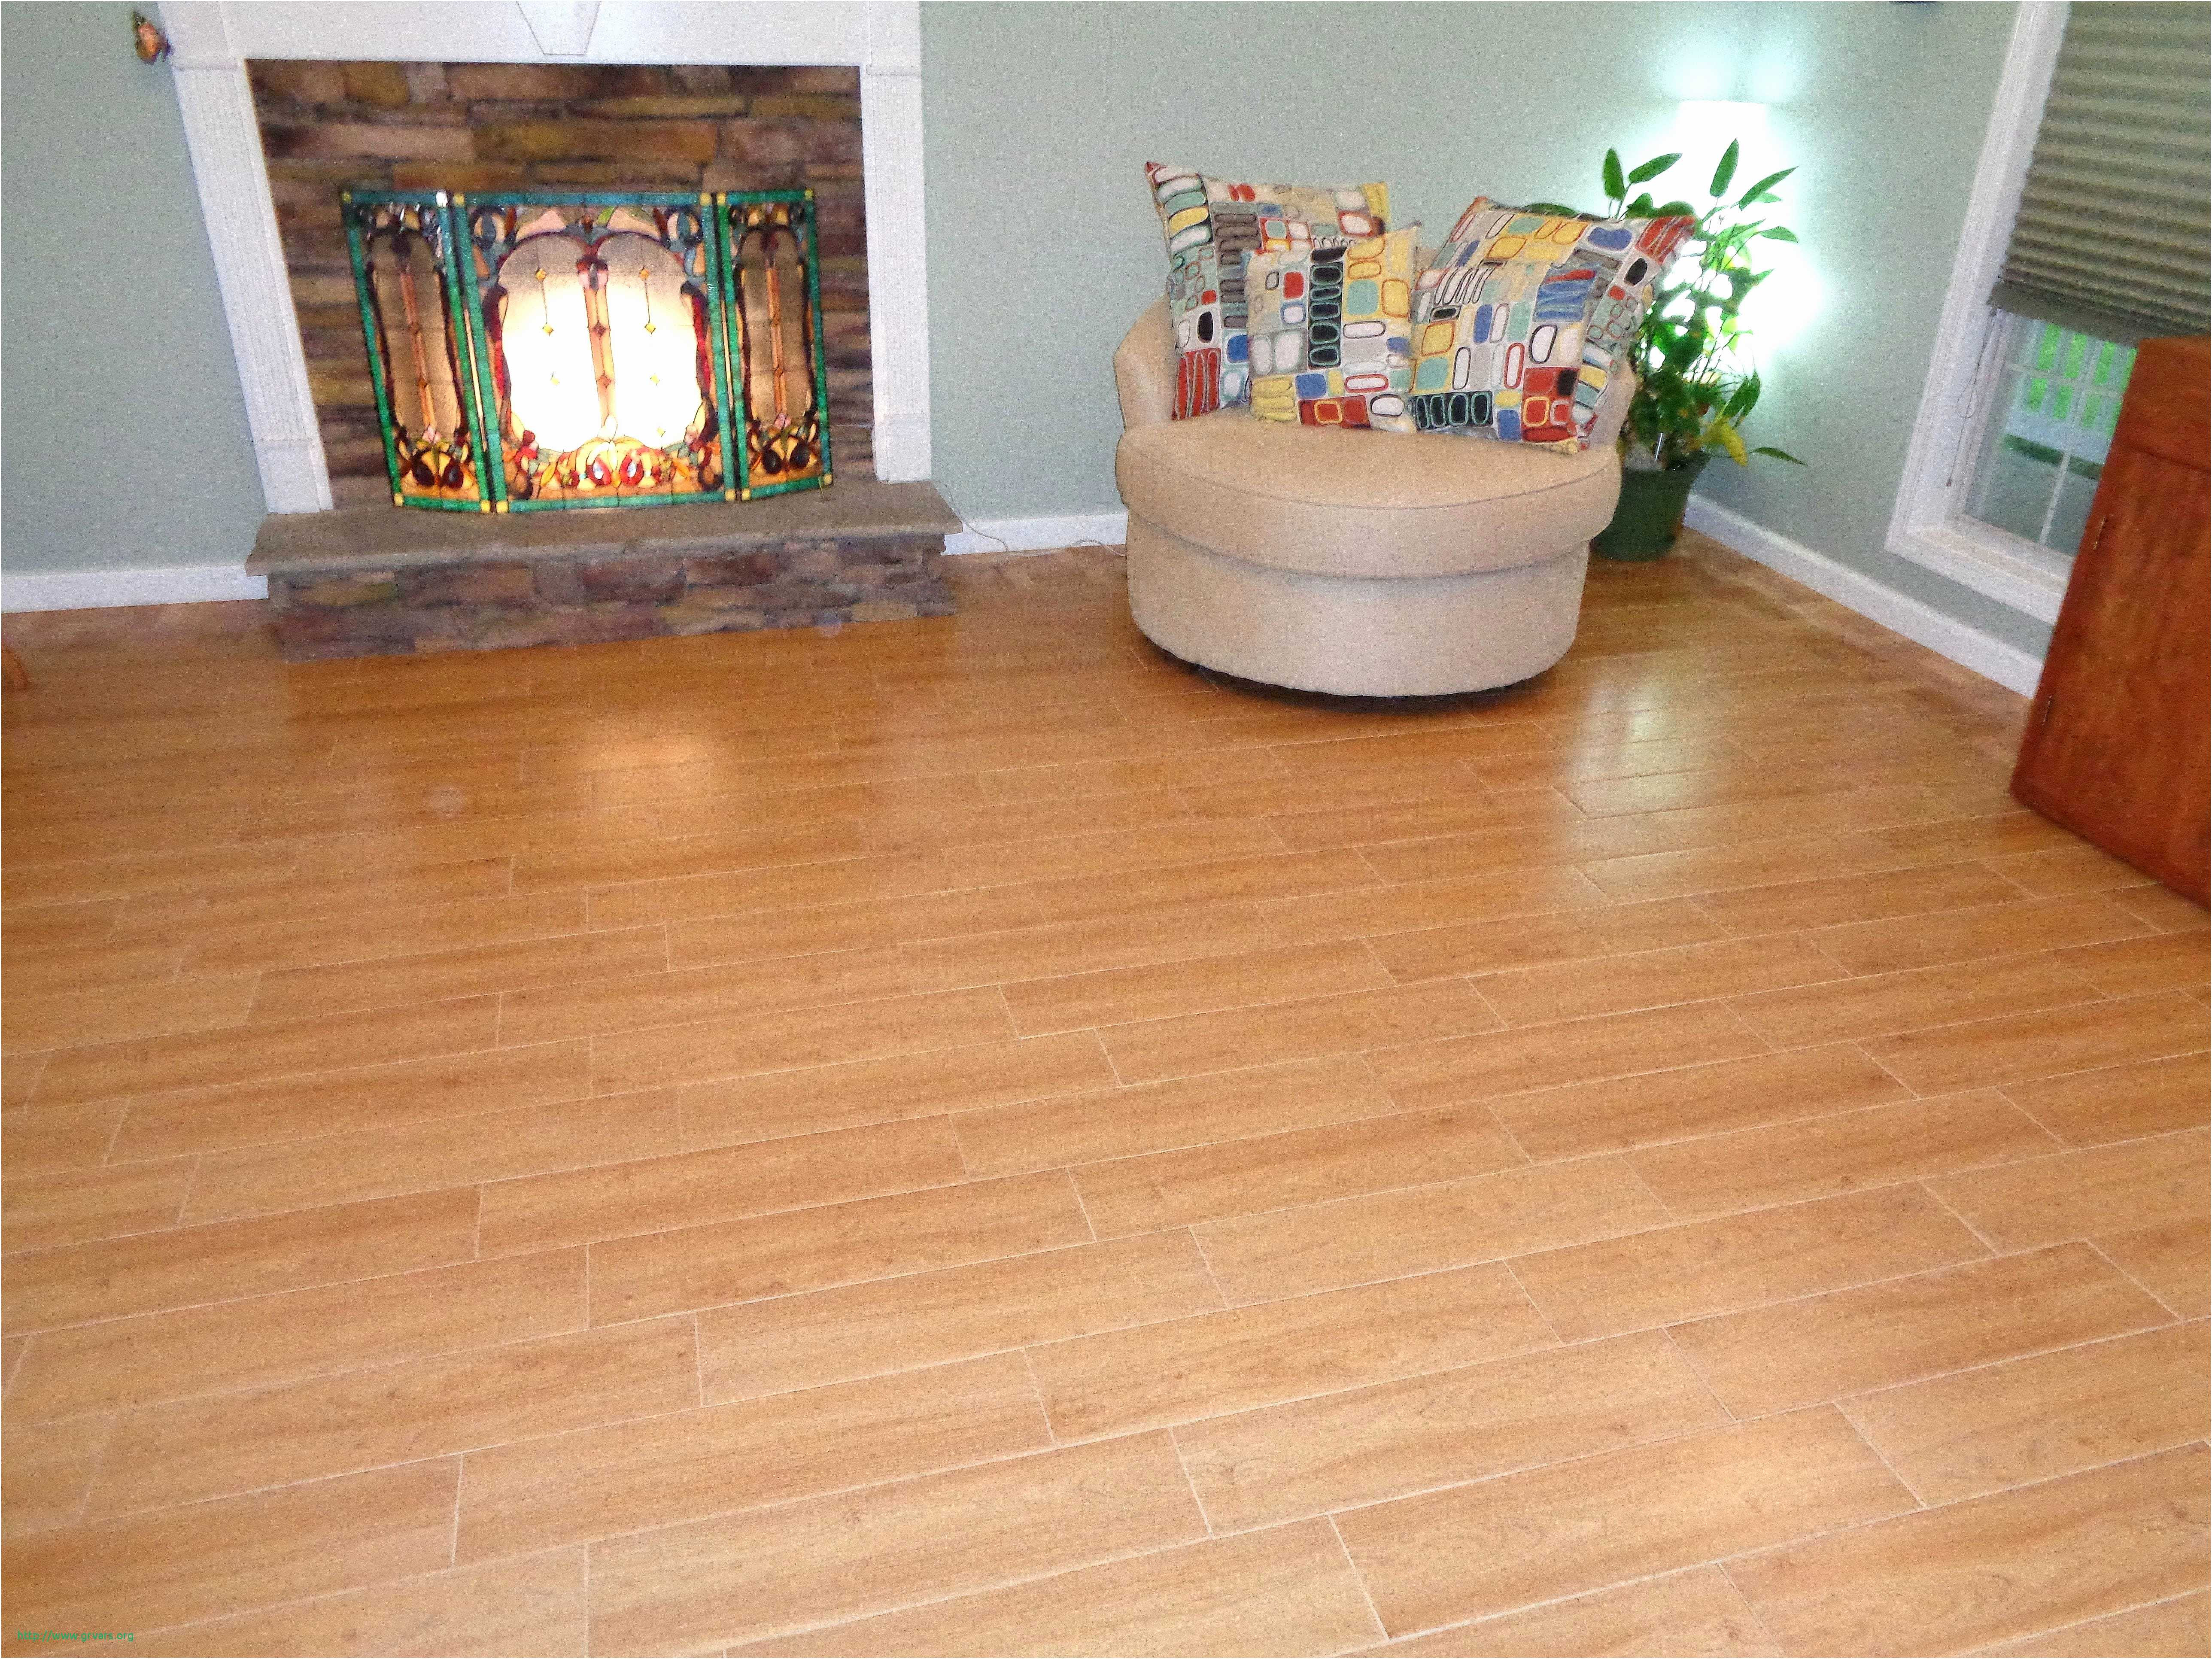 20 Spectacular before and after Pictures Of Refinished Hardwood Floors 2021 free download before and after pictures of refinished hardwood floors of 24 beau changing the color of hardwood floors ideas blog pertaining to changing the color of hardwood floors inspirant pergo floori